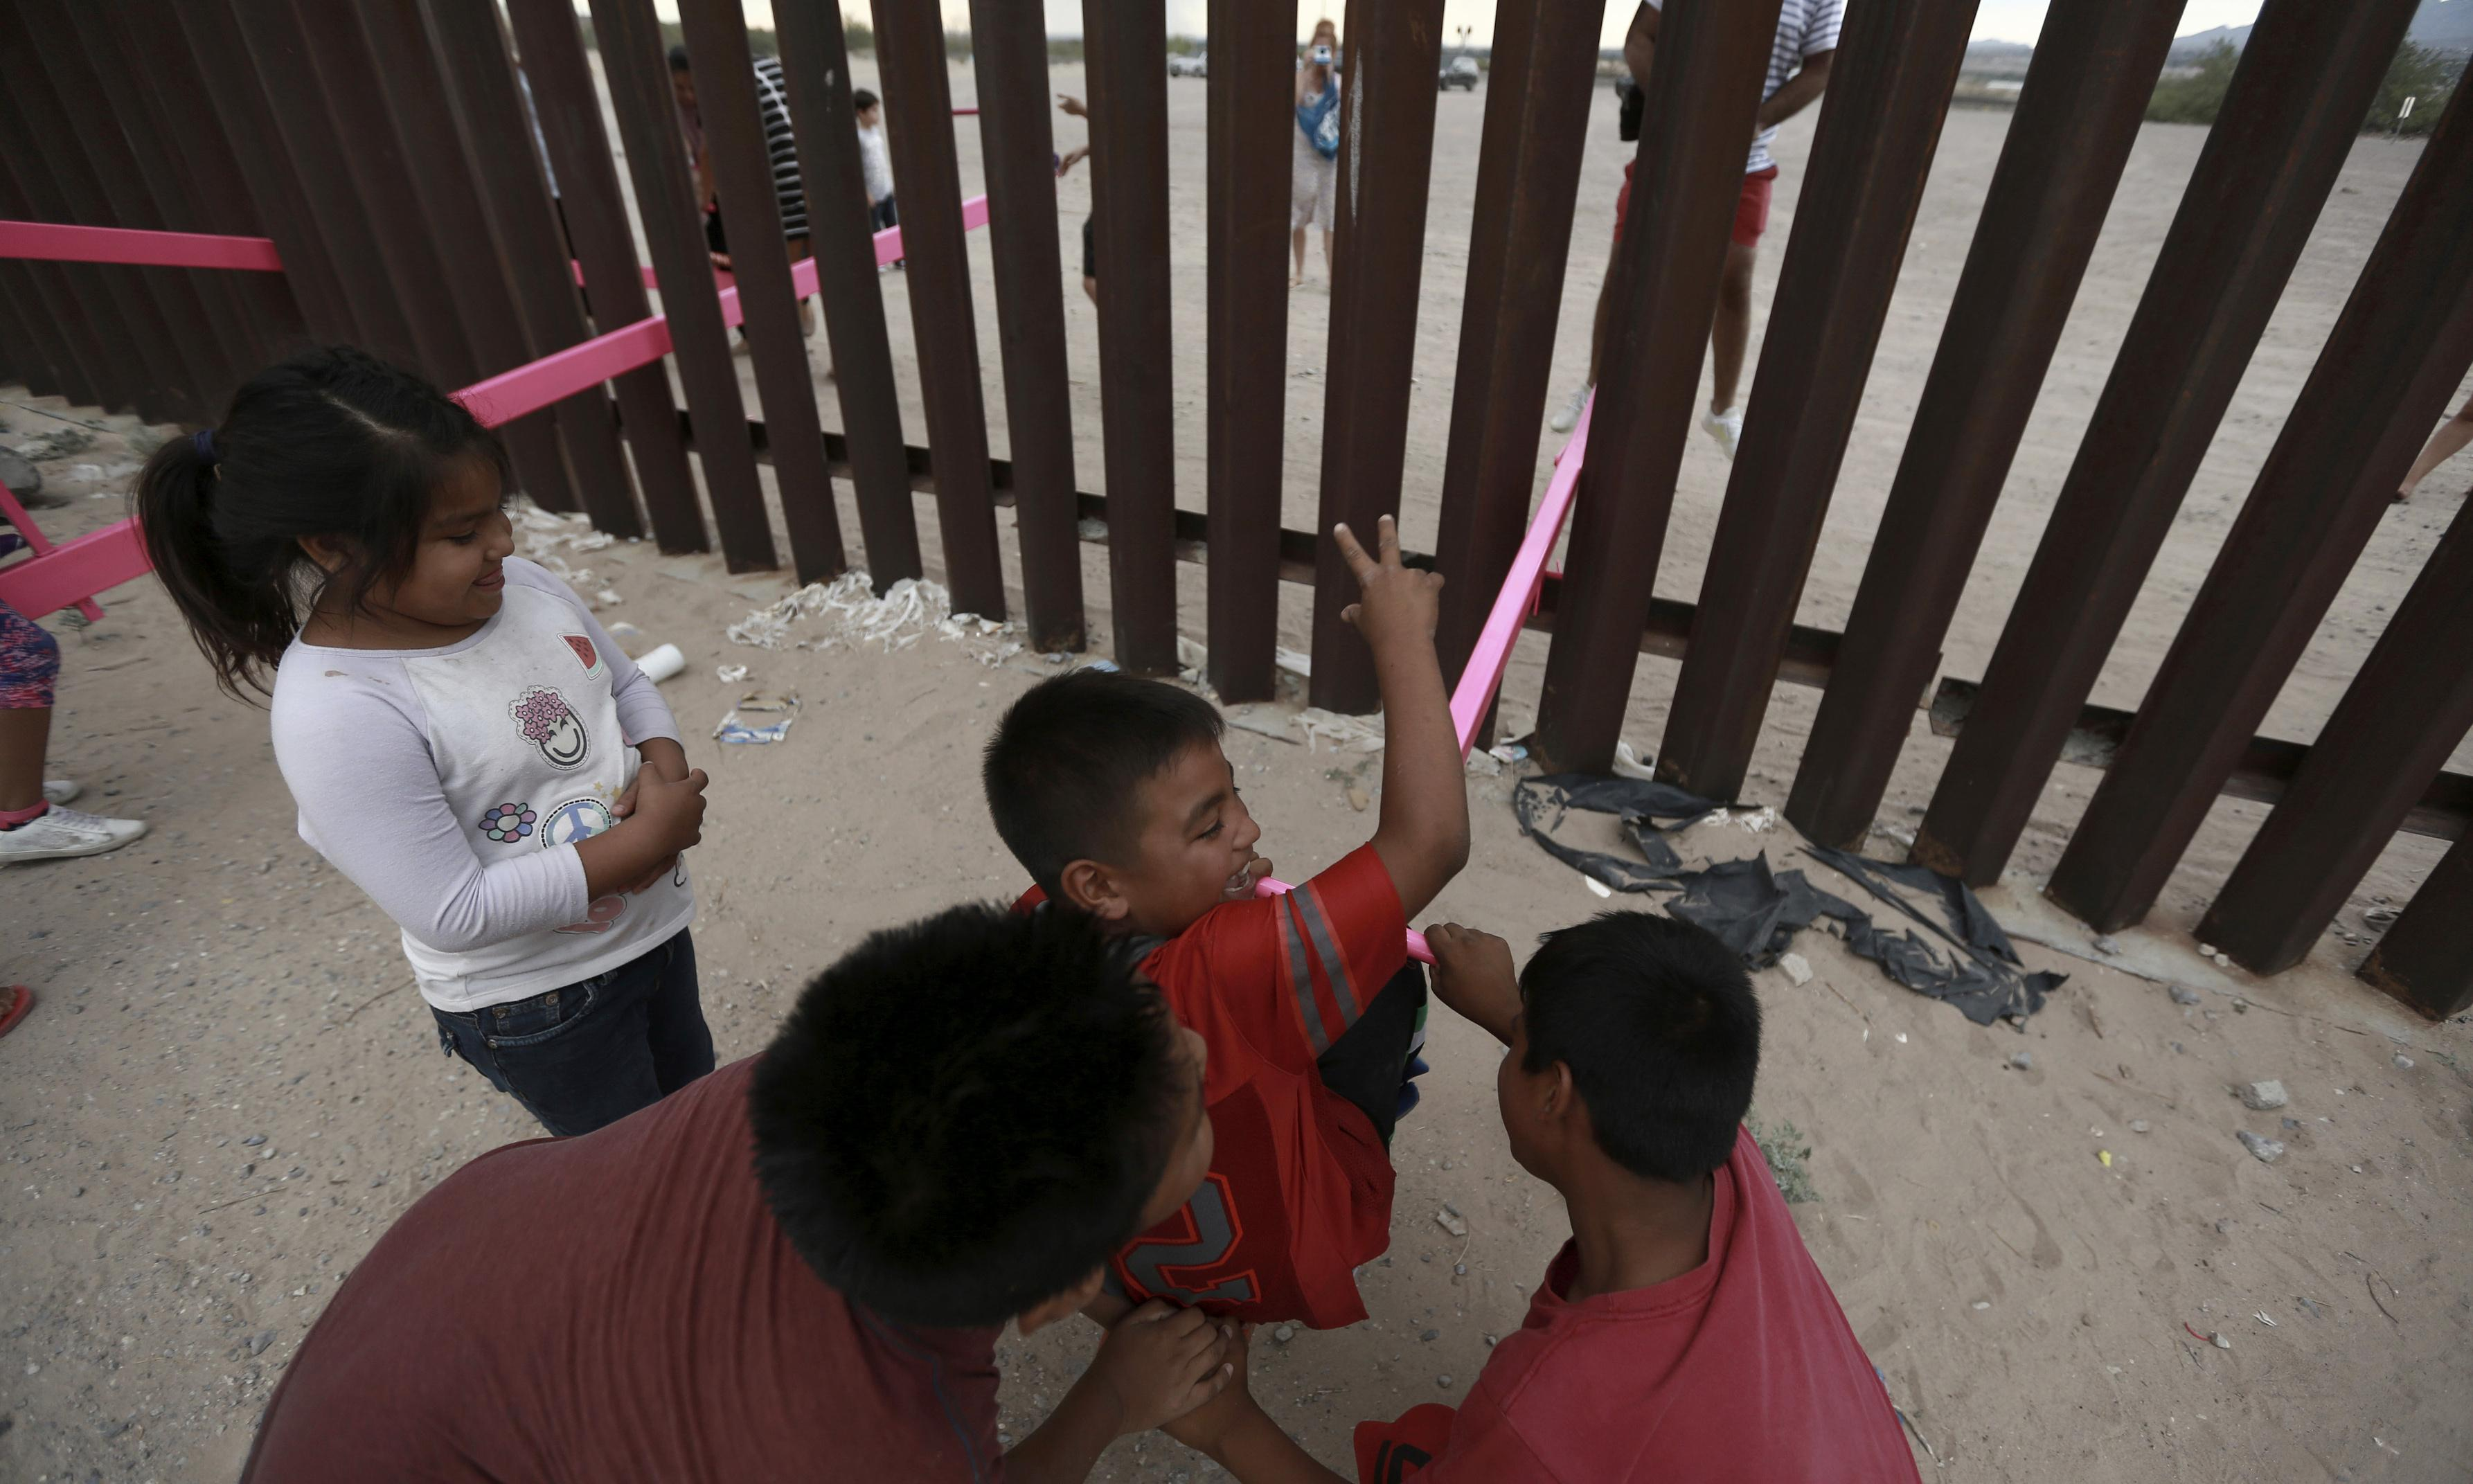 Pink seesaws reach across the divide at US-Mexico border